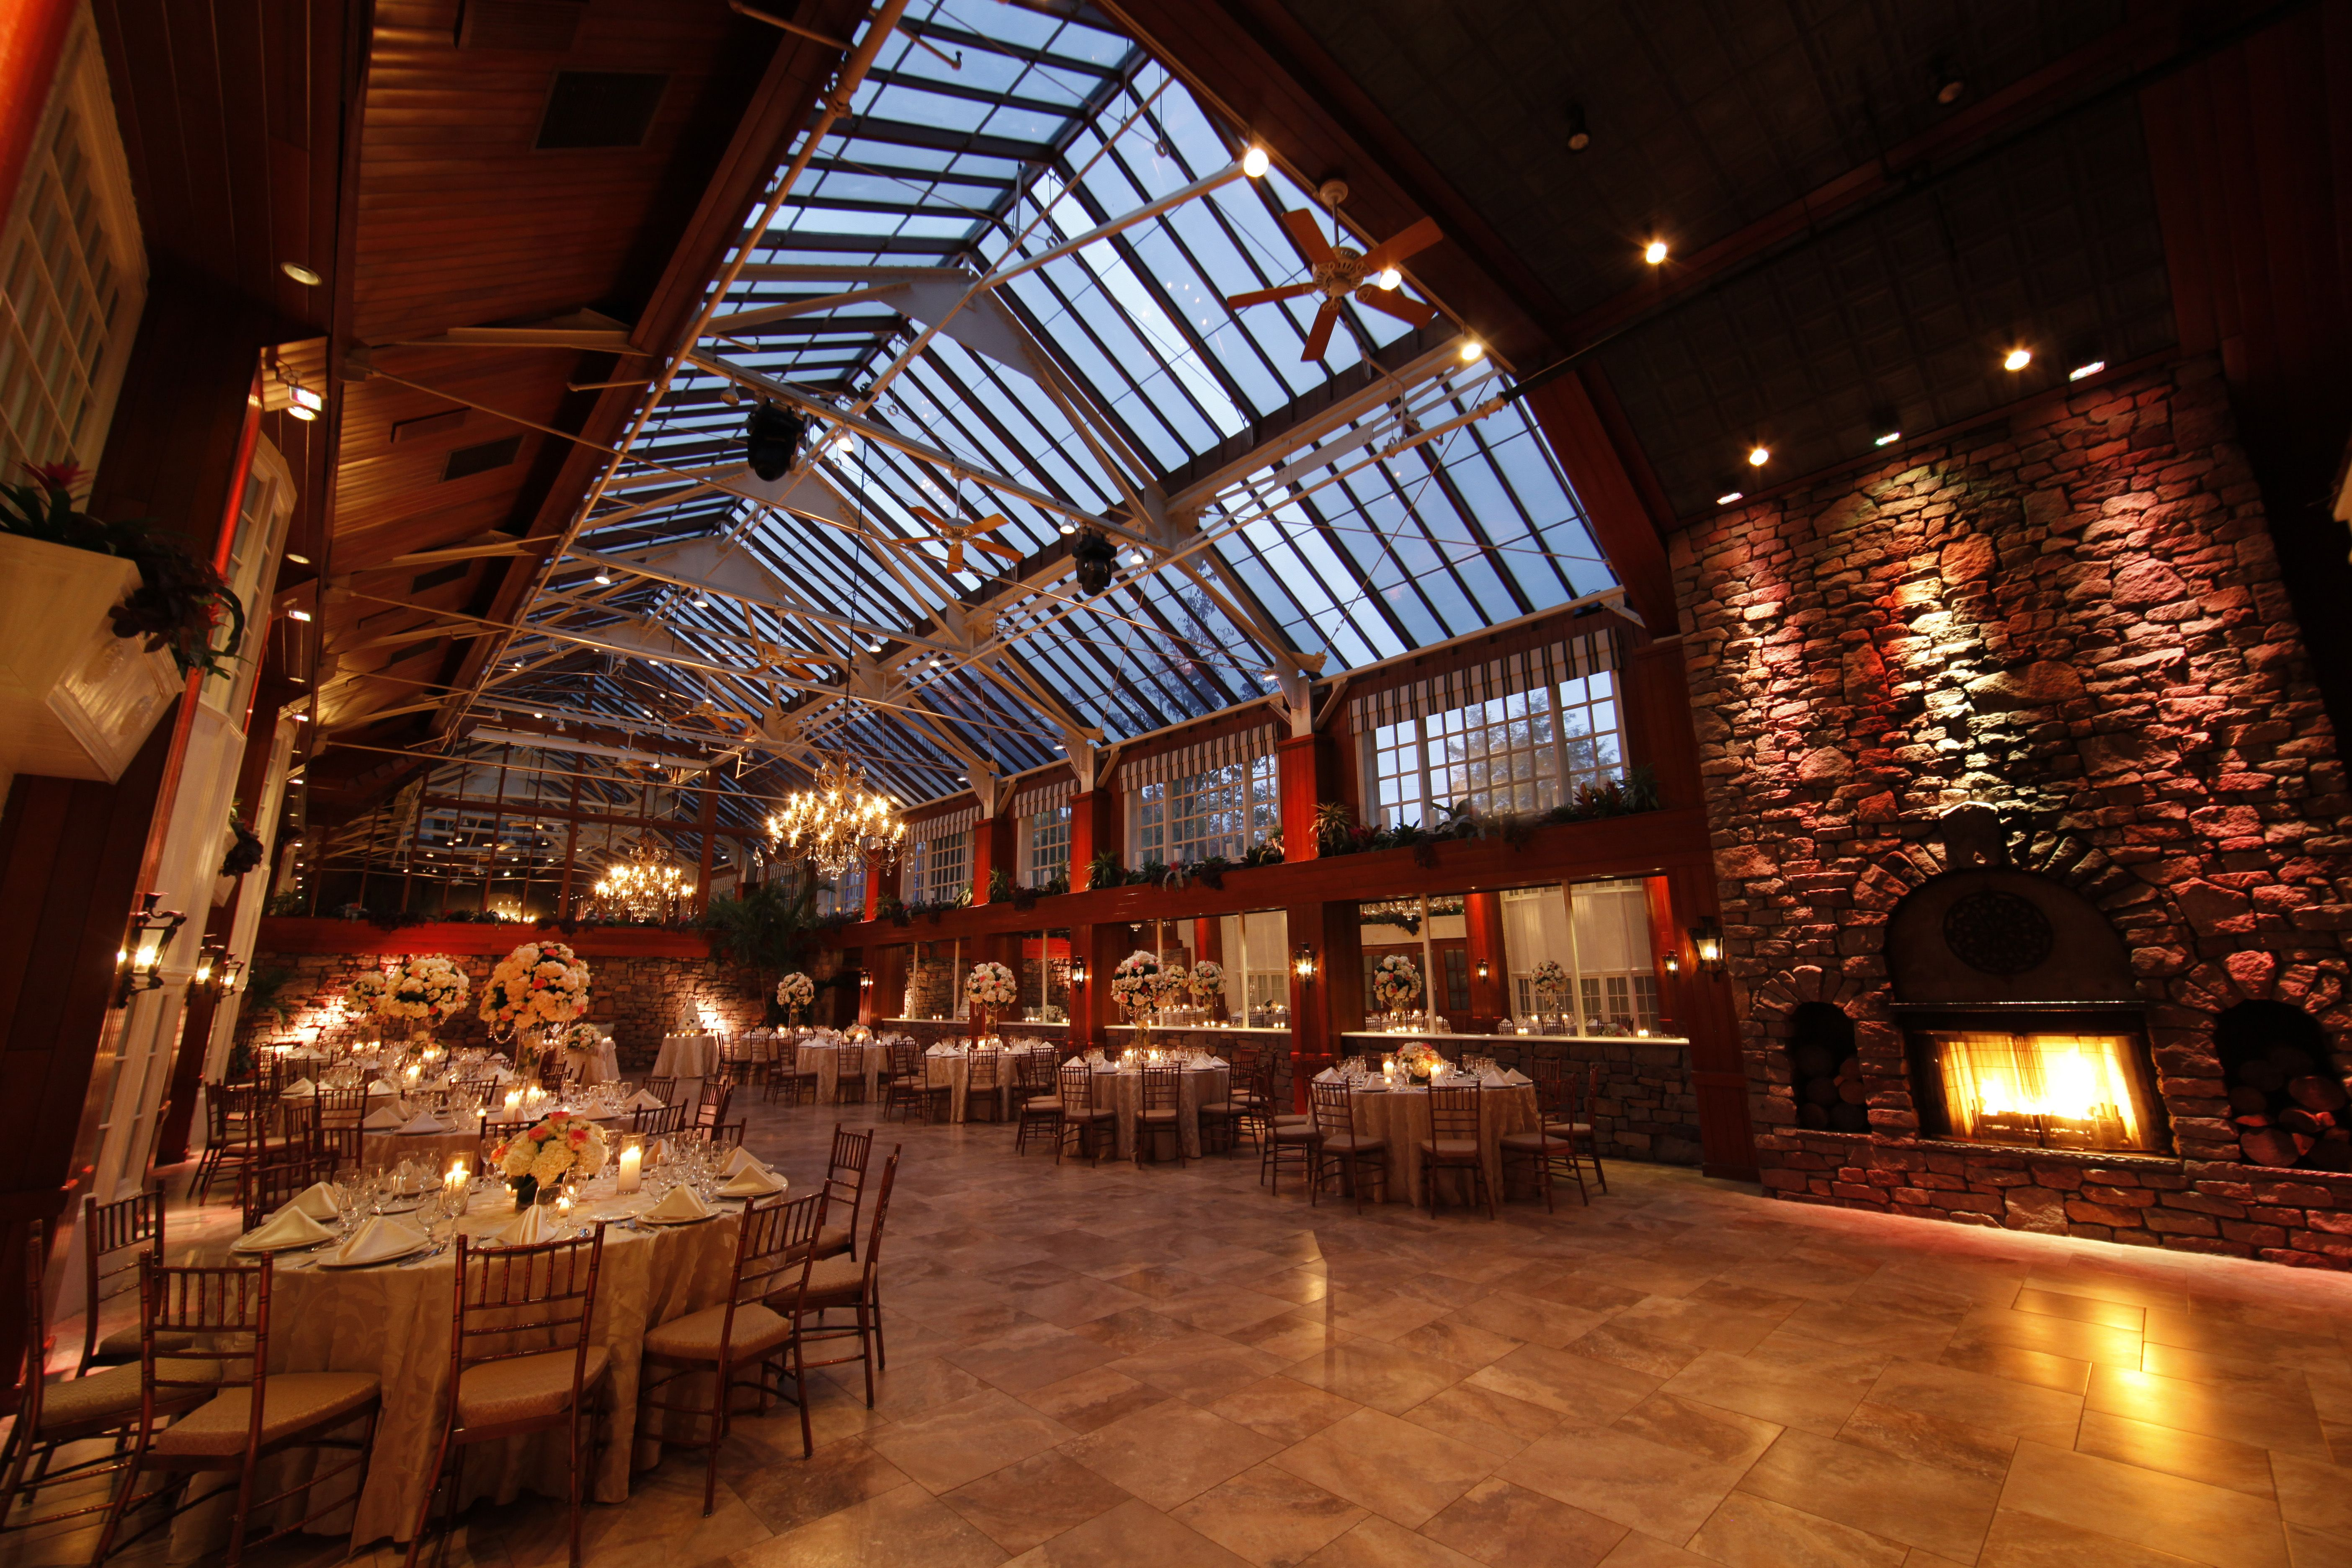 Winter Garden Pavillion At The Fox Hollow Is An Elegant Setting For Your Wedding Reception Or Special Event